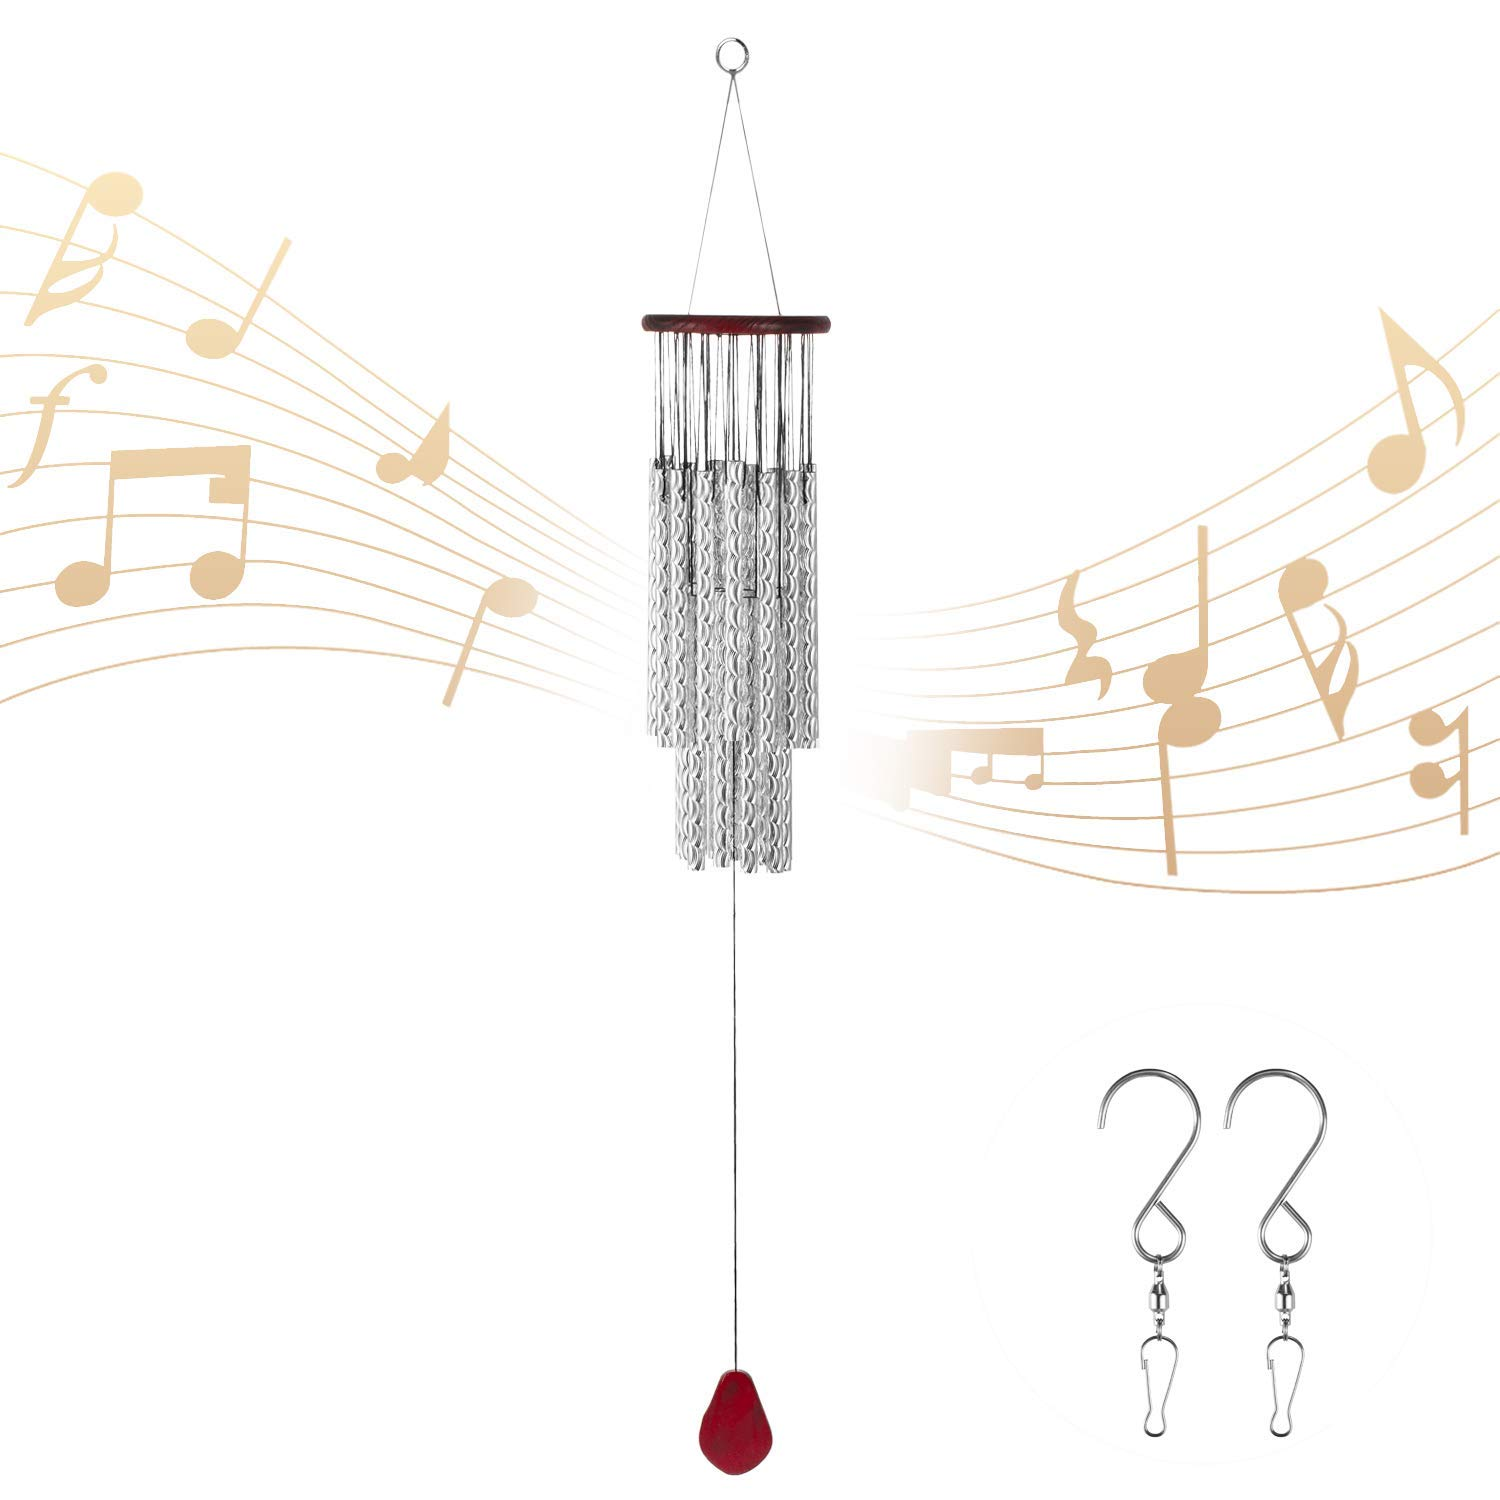 occer Wind Chimes 27 Silver Tubes Large Memorial Wind Chime Outdoor Amazing Grace,Musical Wind Bell with 2 Hook Choice,Decor for Garden,Porch,Balcony,& Indoor